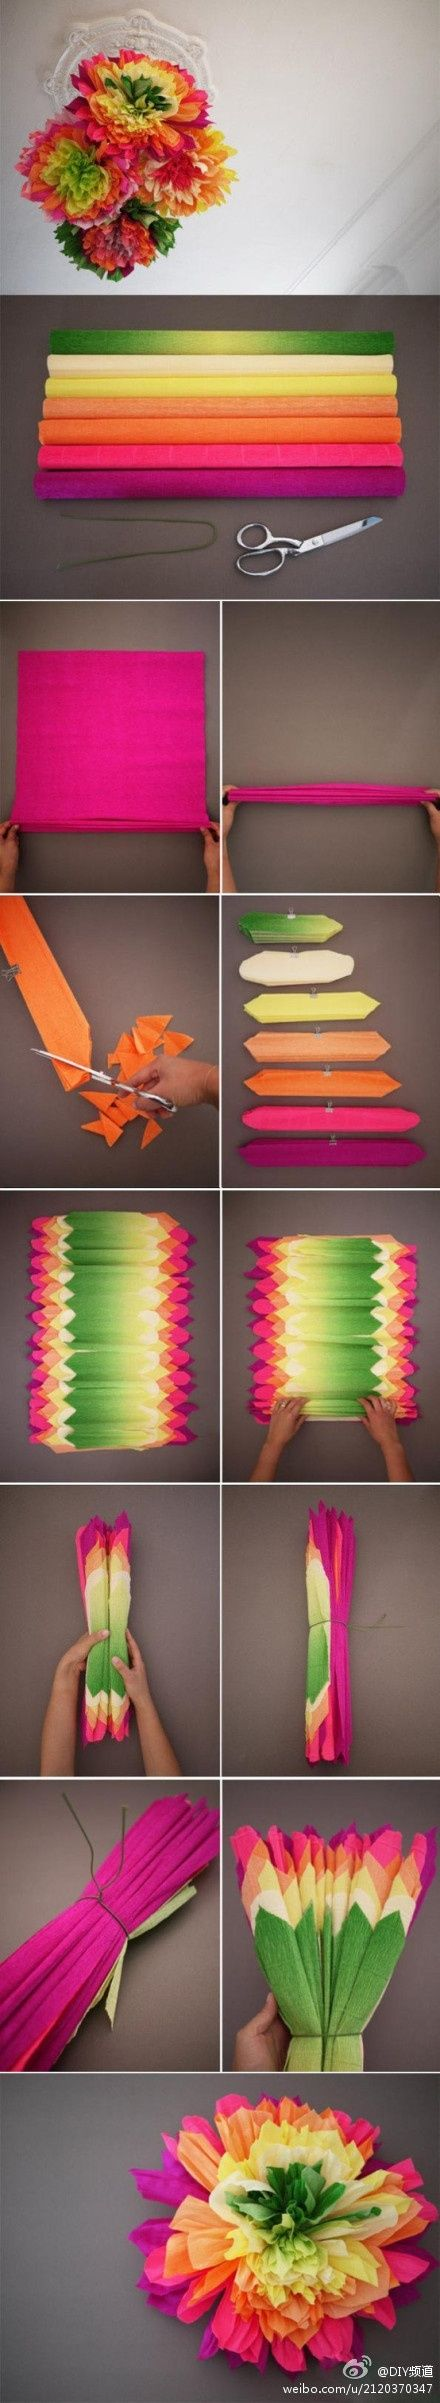 Layered tissue paper flower. Great decoration for so many events!